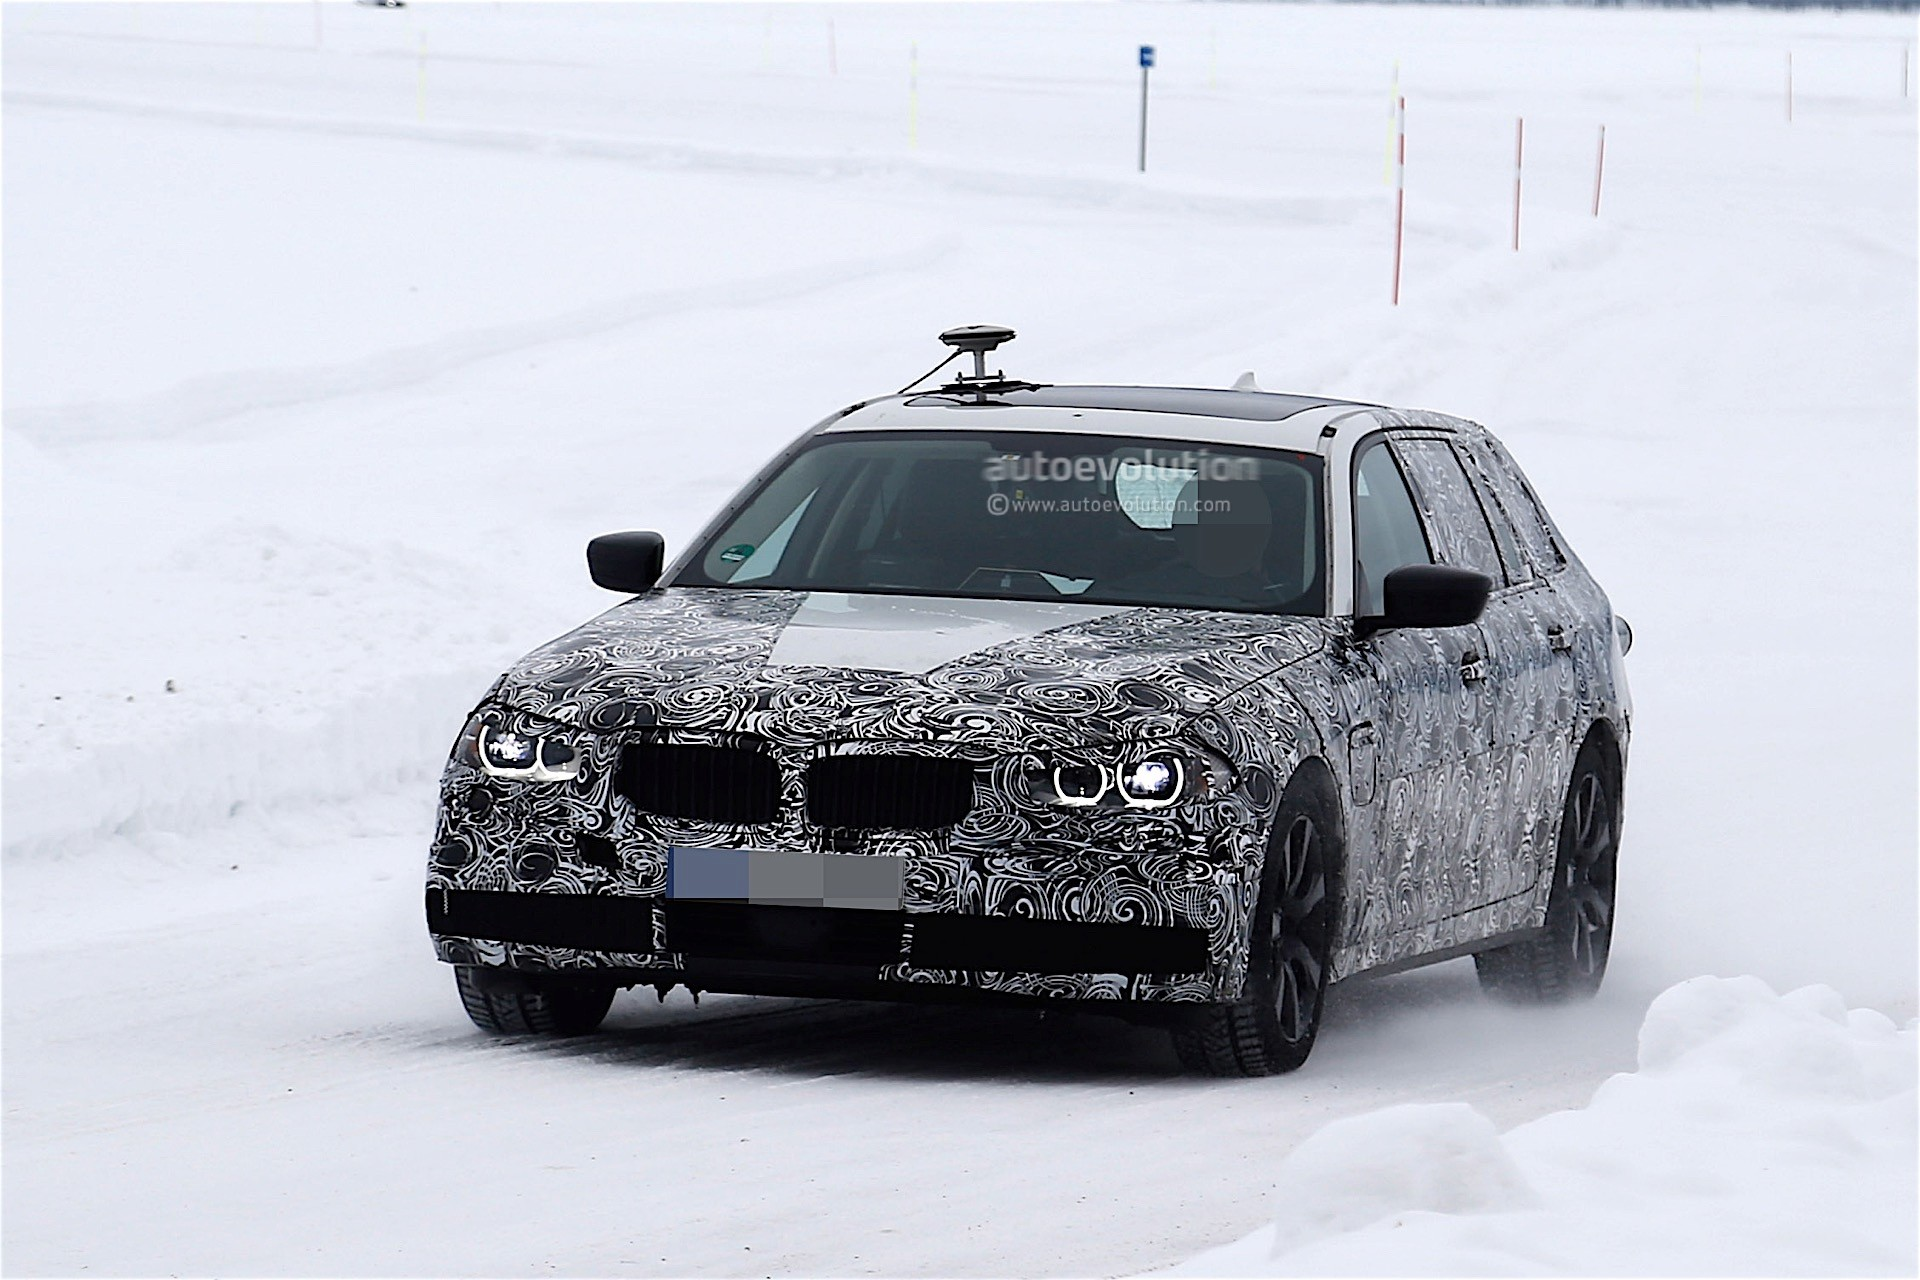 2017 bmw 5 series touring spied testing in winter conditions autoevolution. Black Bedroom Furniture Sets. Home Design Ideas